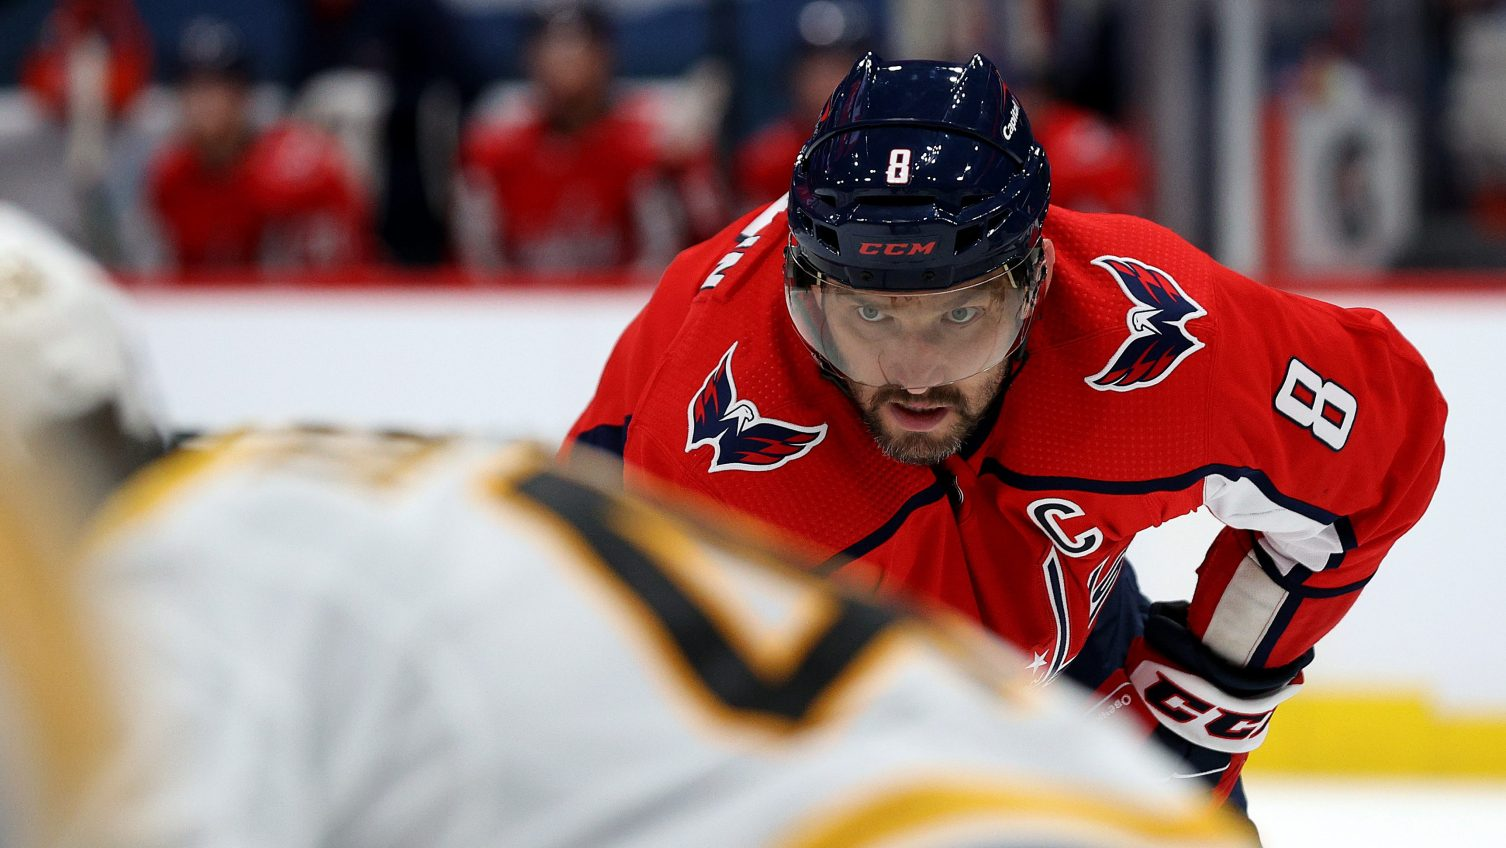 Rock the gray: Old Capitals still contending for Stanley Cup